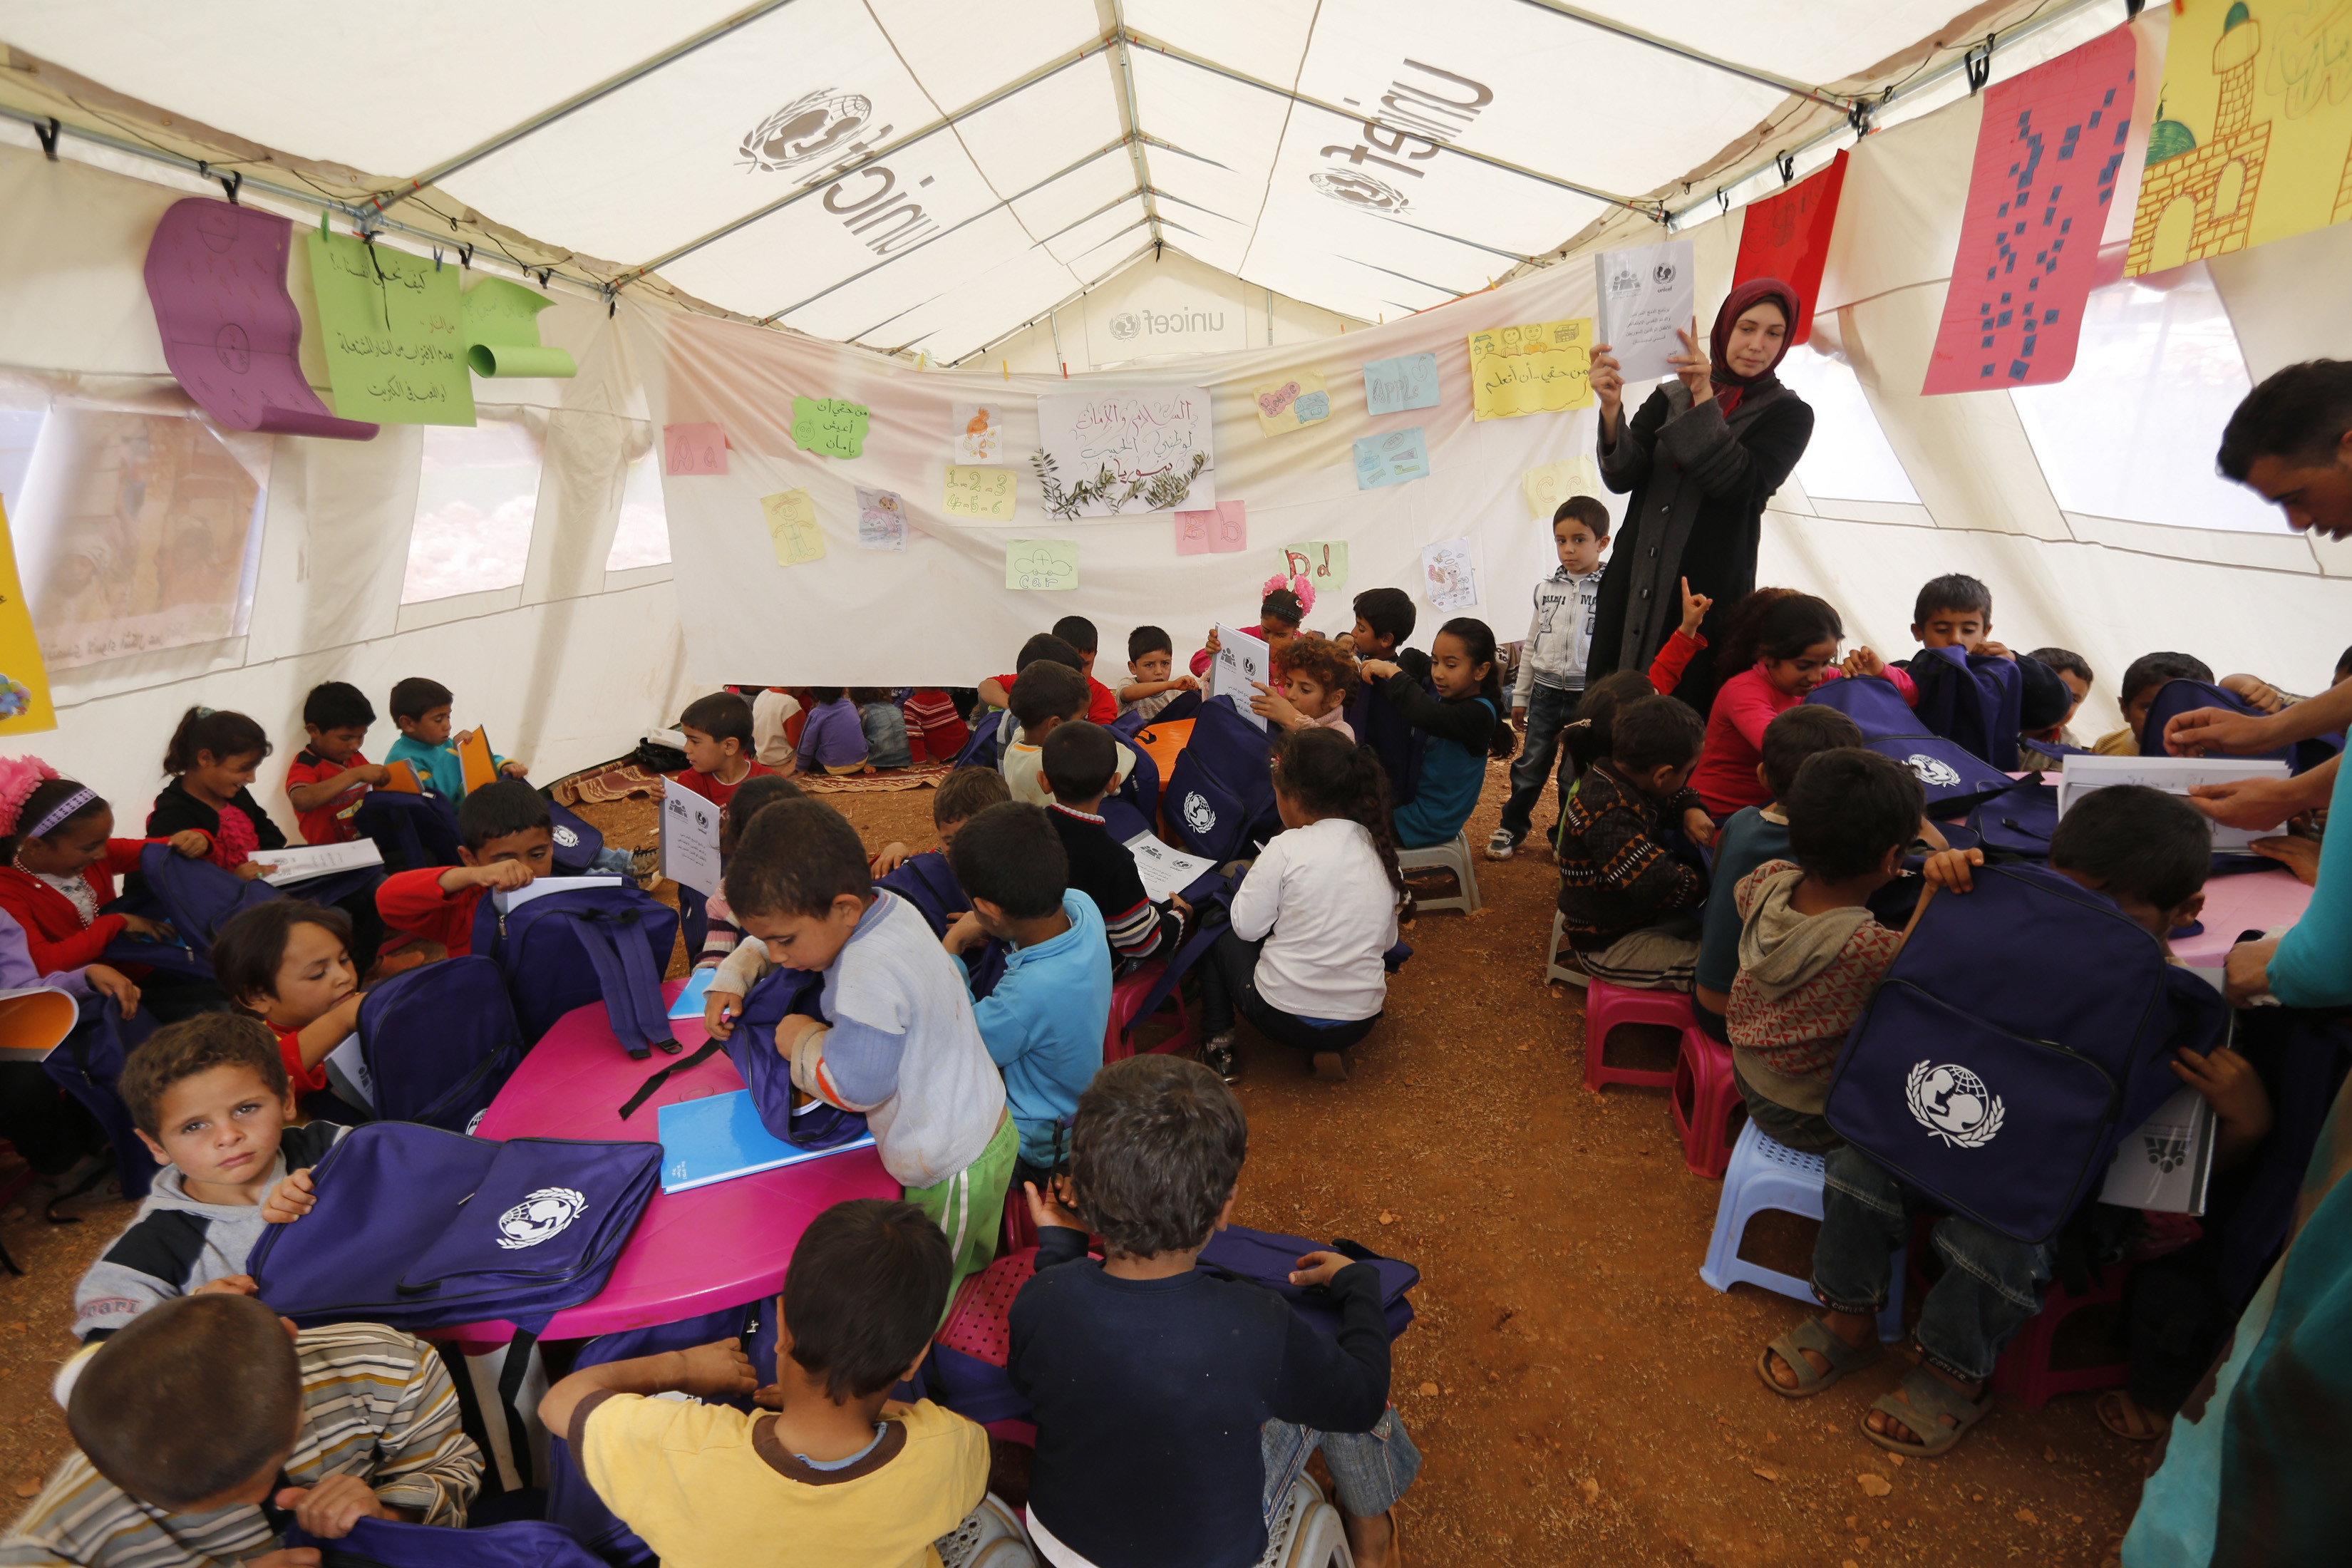 Syrian refugee children sit inside a makeshift school tent as a teacher conducts English lessons during a visit by UNICEF Executive Director Anthony Lake to the Syrian refugees camp in Kfar Zabad village at Bekaa valley, eastern Lebanon, November 1, 2013. International donors must do more to help Lebanon absorb a flood of refugees straining its schools and public services, the head of the United Nations children's fund UNICEF said. Picture taken November 1, 2013. REUTERS/Jamal Saidi (LEBANON - Tags: CIVIL UNREST POLITICS SOCIETY EDUCATION) - GM1E9B31M8L01